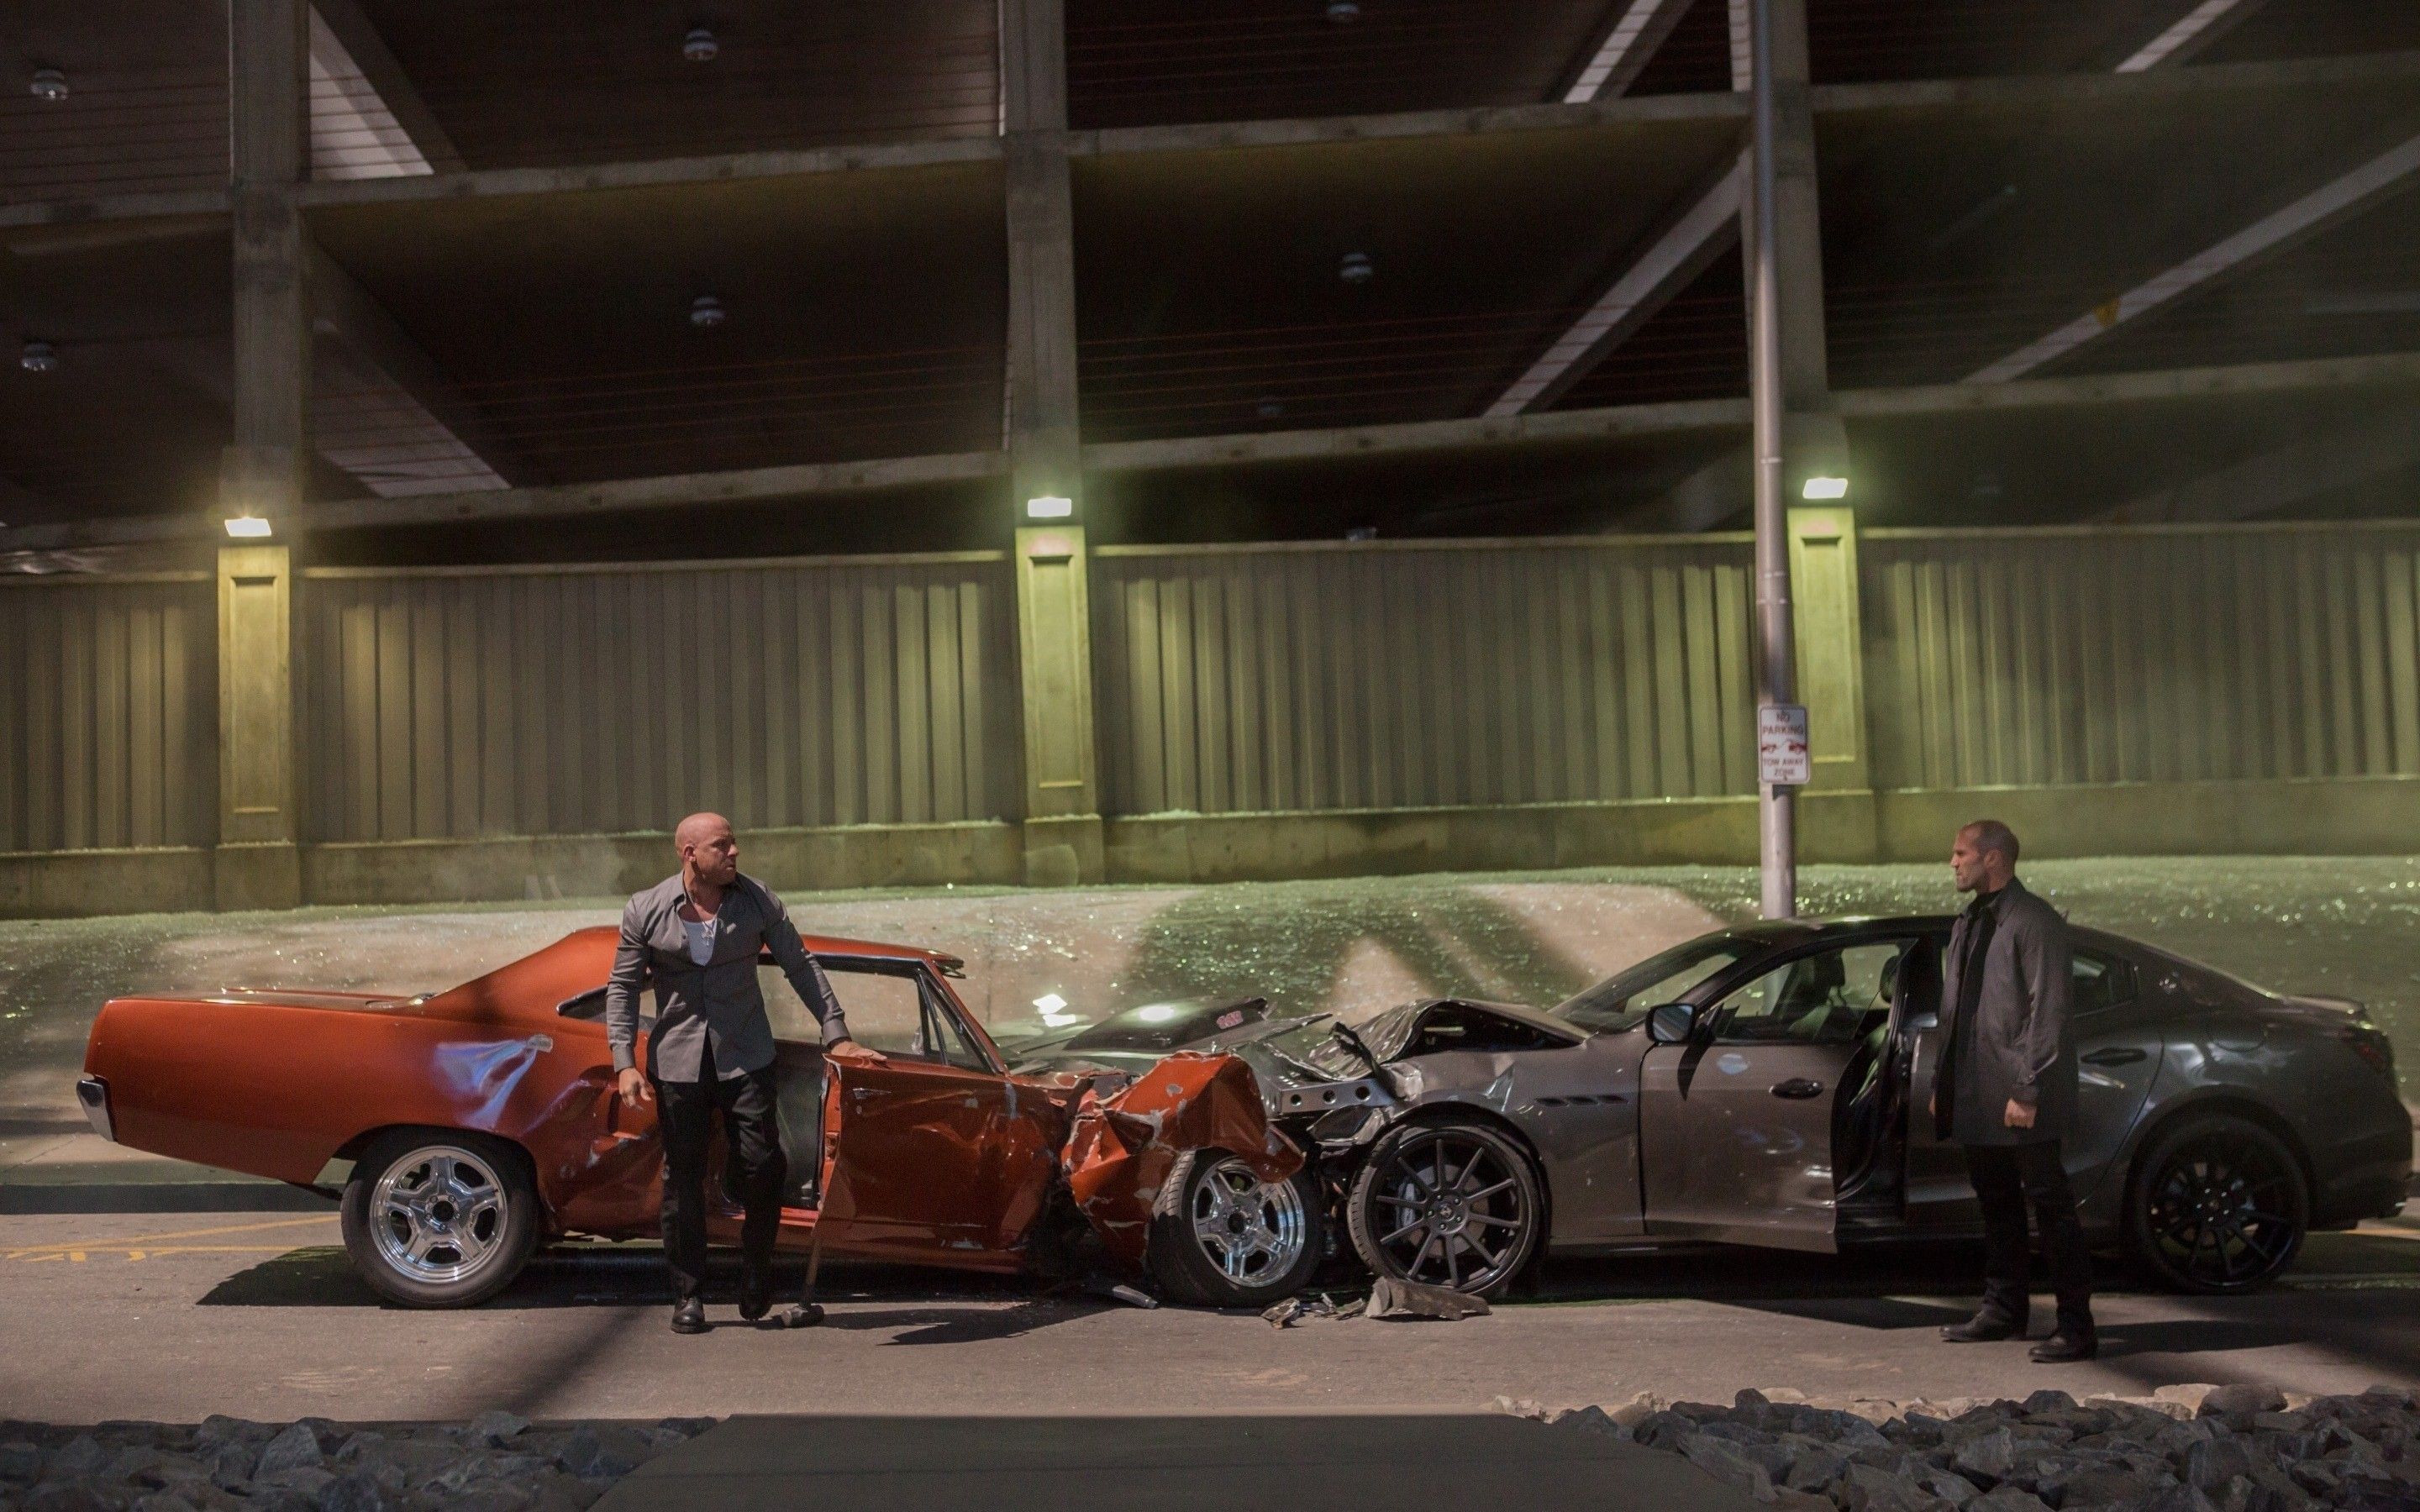 fast and furious movie scene HD Wallpaper